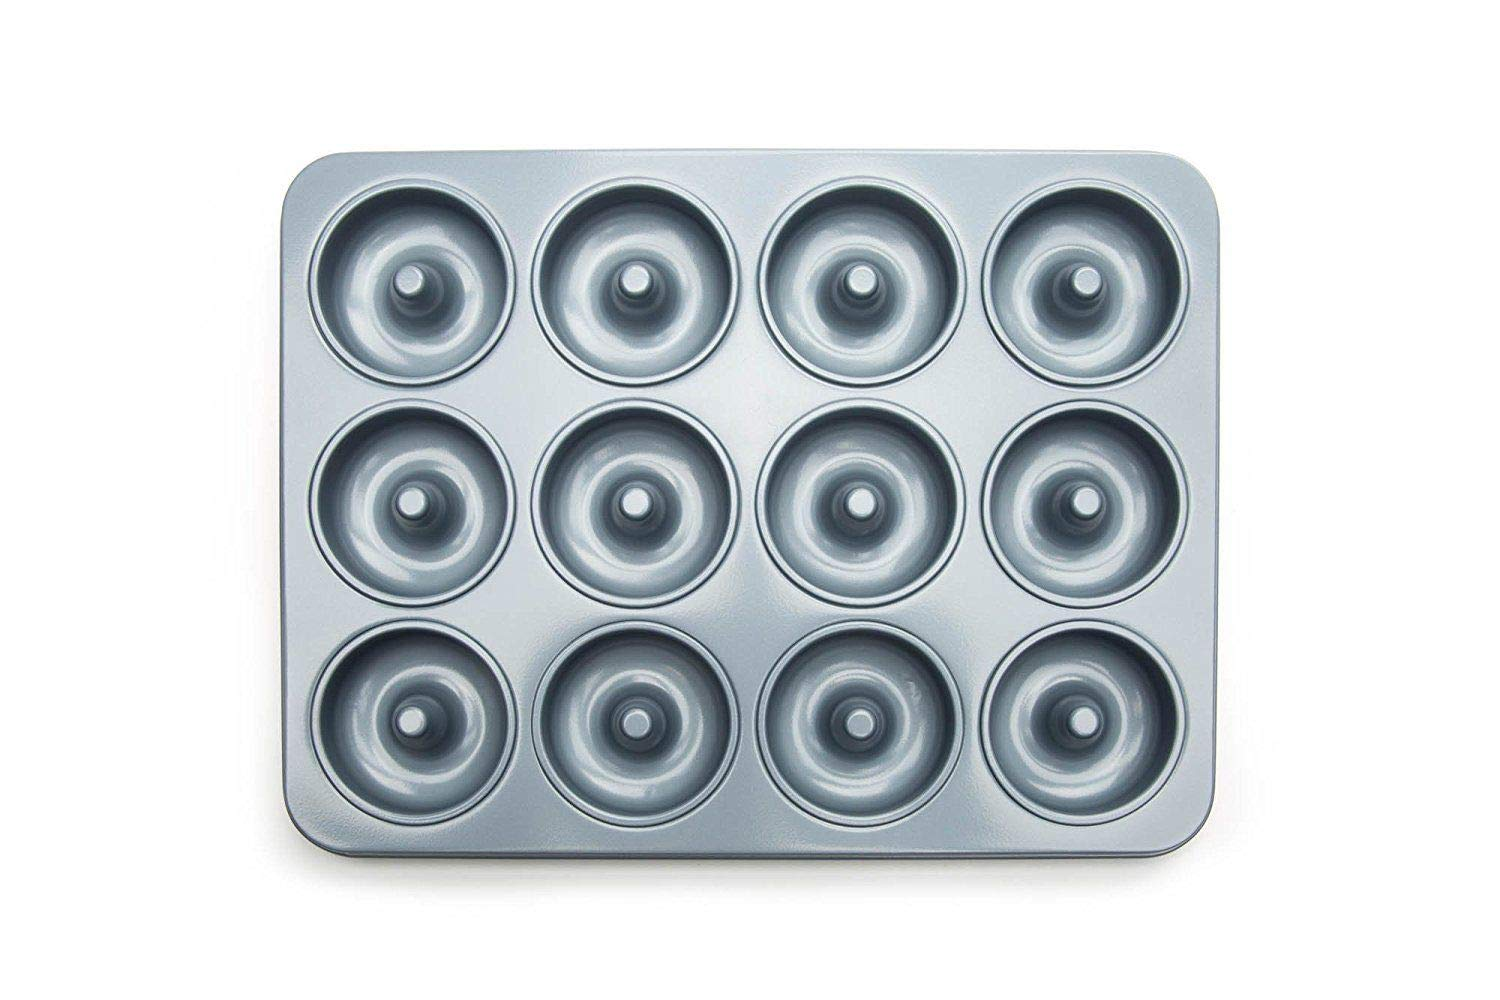 Akkapeary Nonstick Heavy Gauge Steel Mini Donut Pan Kitchen Bakeware For 12 Donuts prevent warping allow even heat distribution without the grease lower in fat and calories 10'' x 7.75'' Silver by Akkapeary (Image #1)